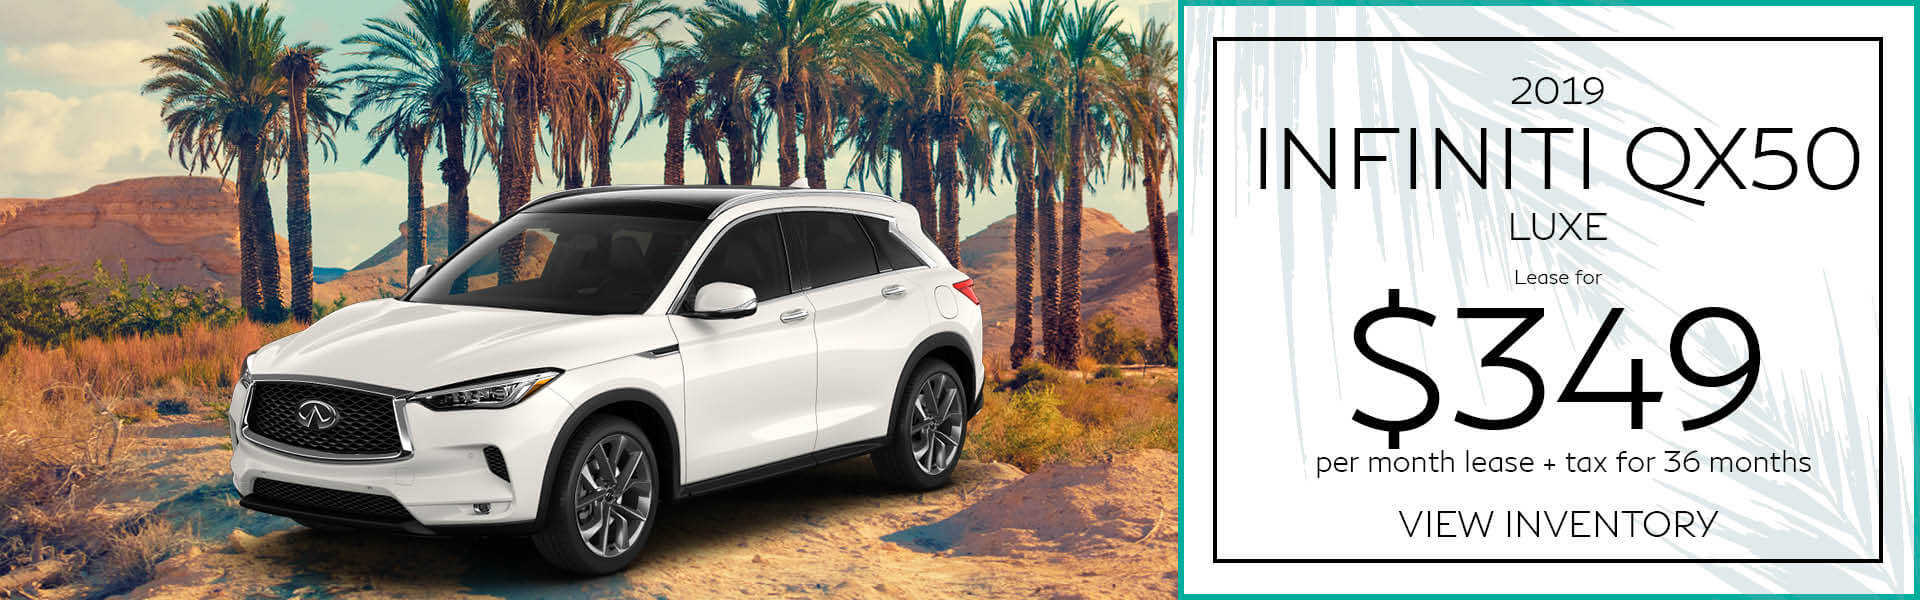 QX50- Lease for $349